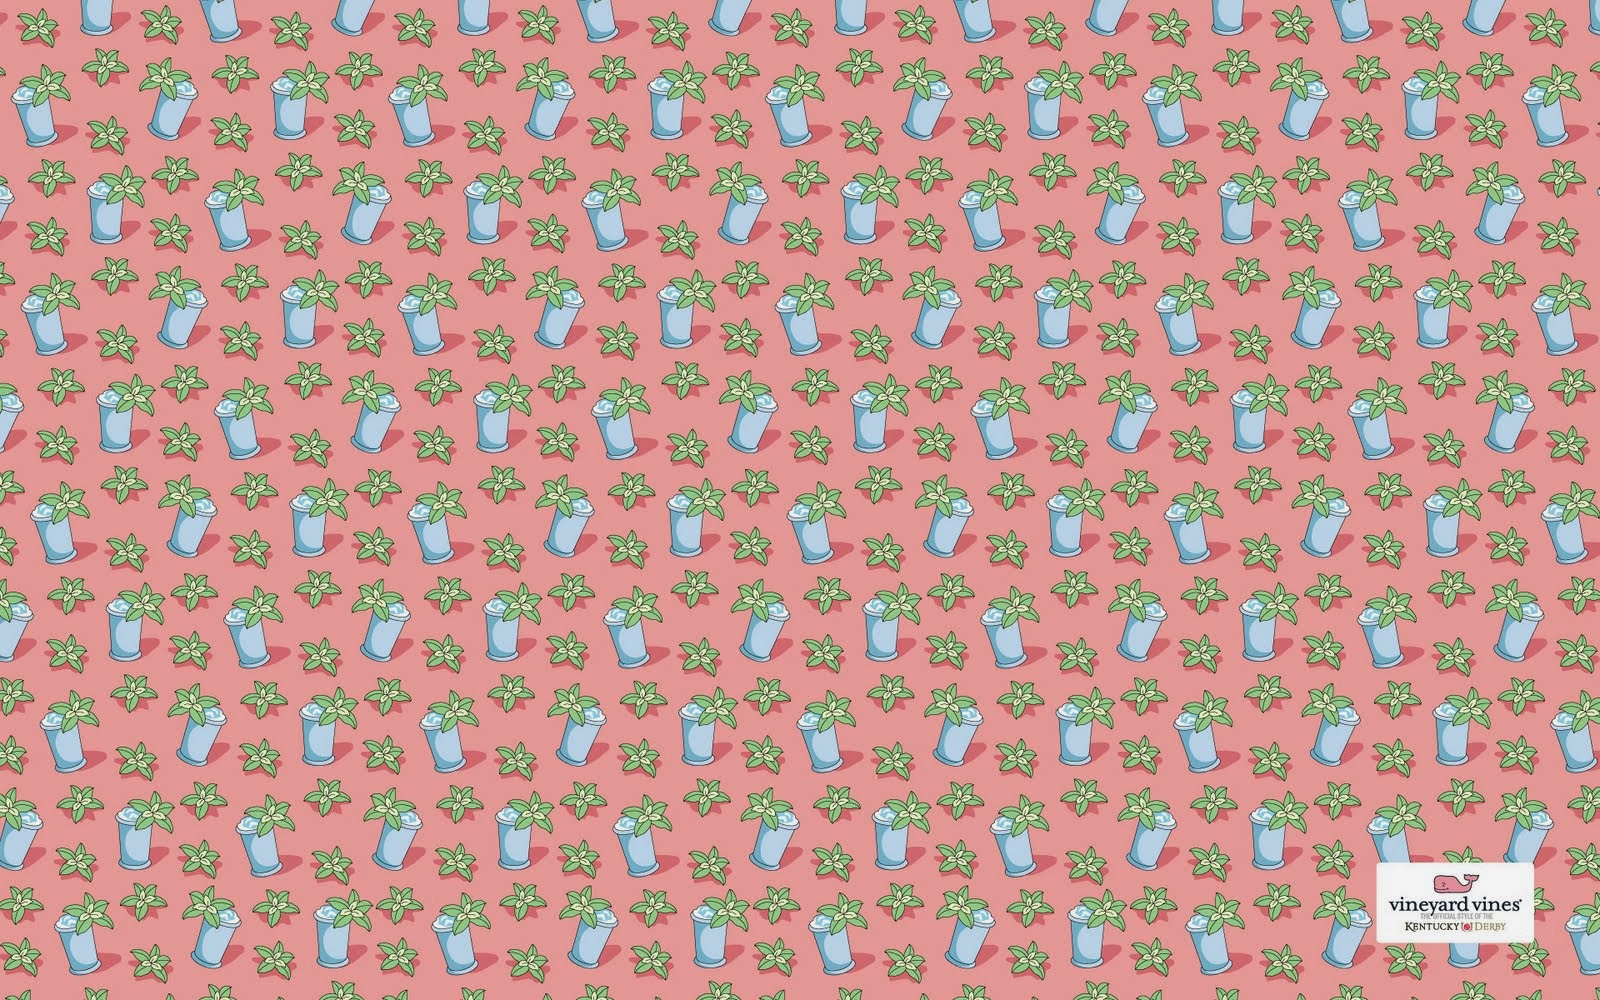 Preppy Princess : vineyard vines wallpapers